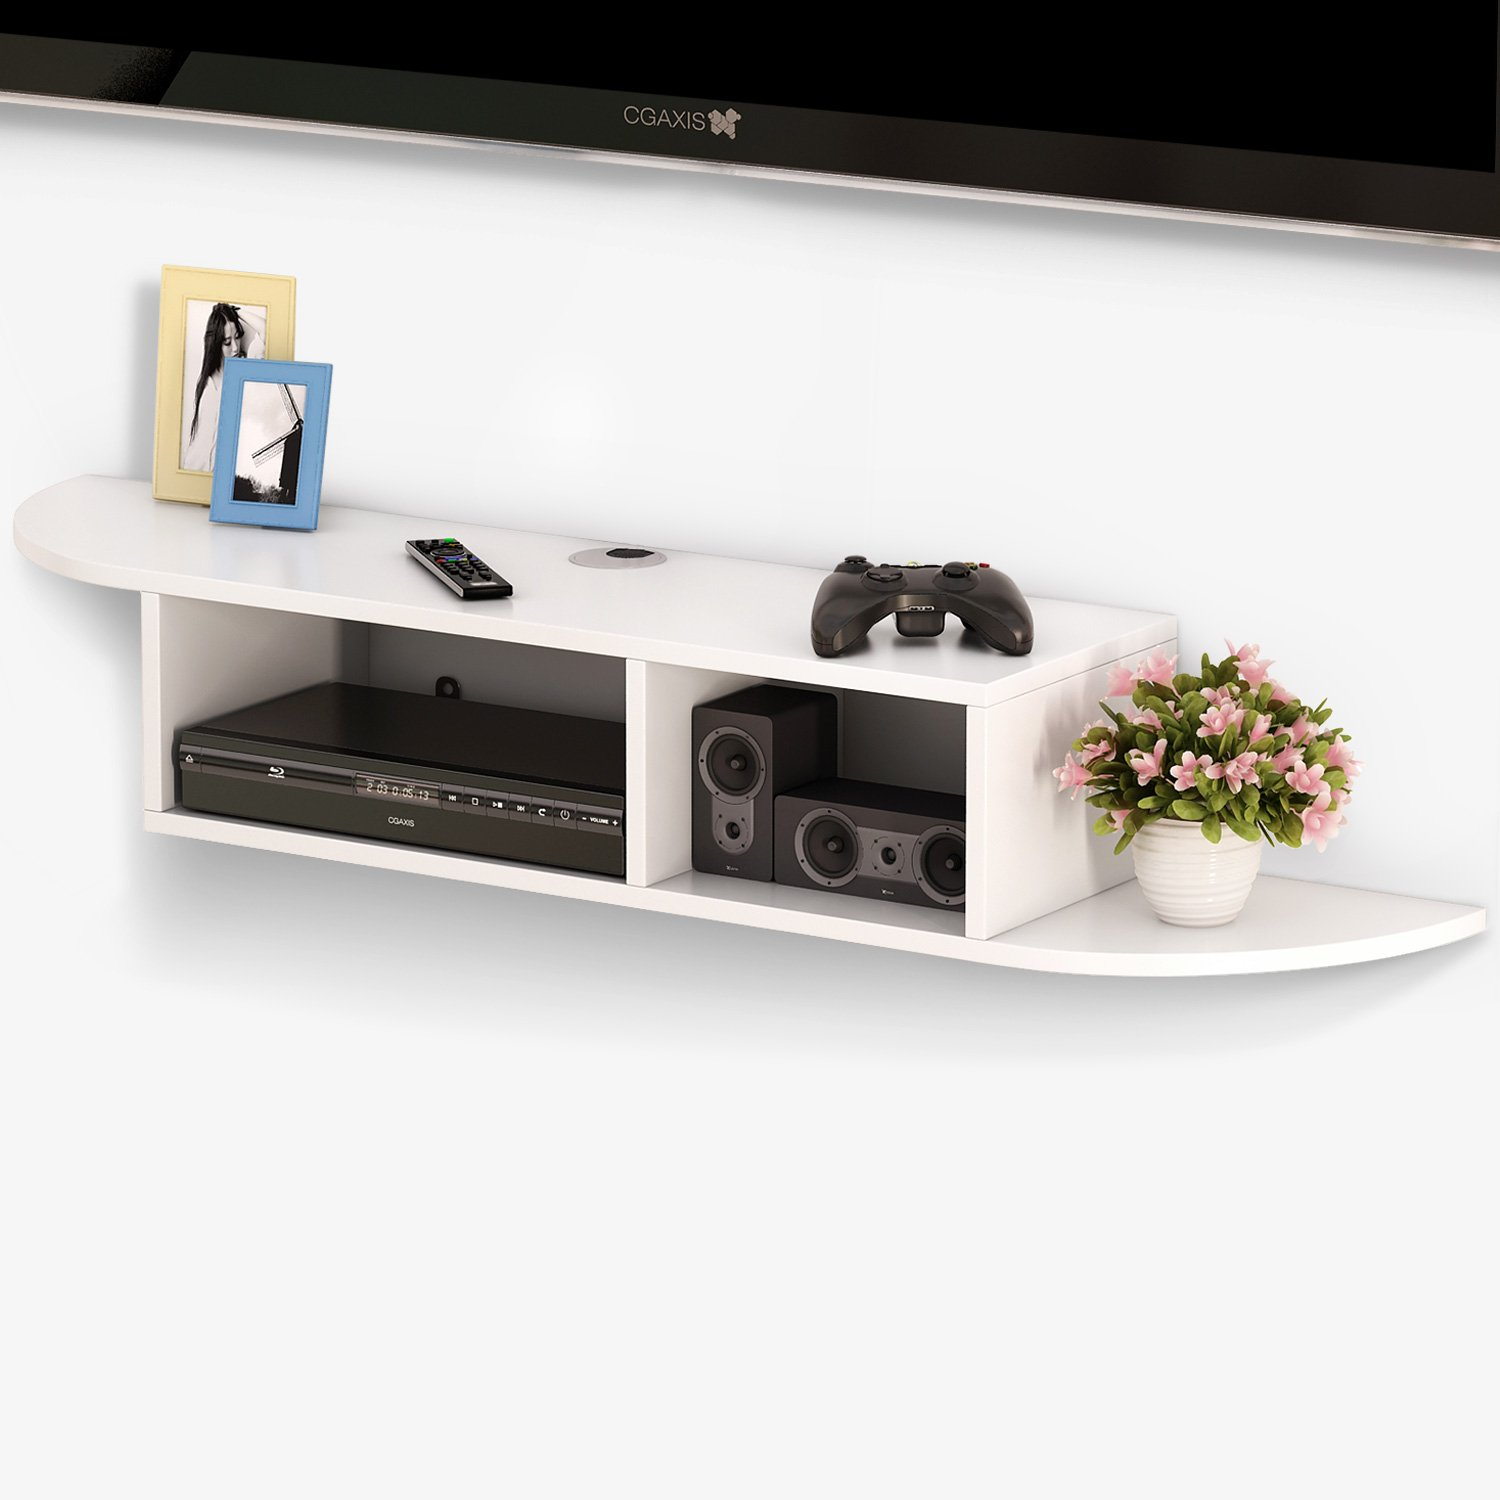 Tribesigns 2 Tier Modern Wall Mount Floating Shelf TV Console 43.3x9.4x7 inch for Cable Boxes/Routers/Remotes/DVD Players/Game Consoles (White) by Tribesigns